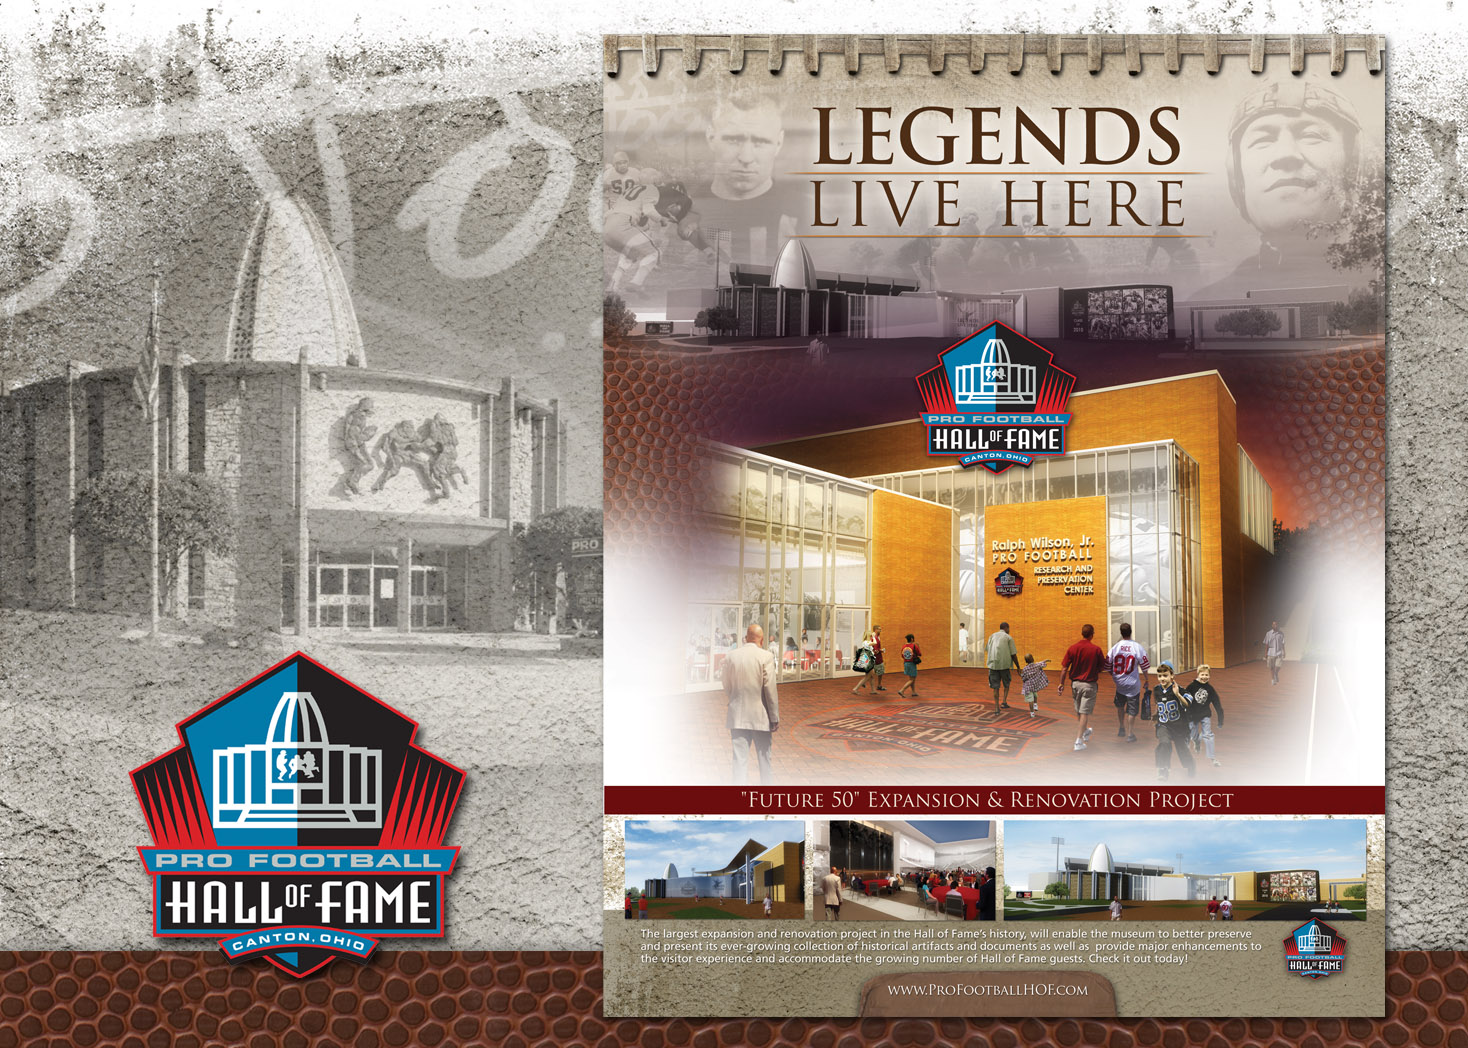 Pro Football Hall of Fame - Magazine Ad Design - Les Lehman Design